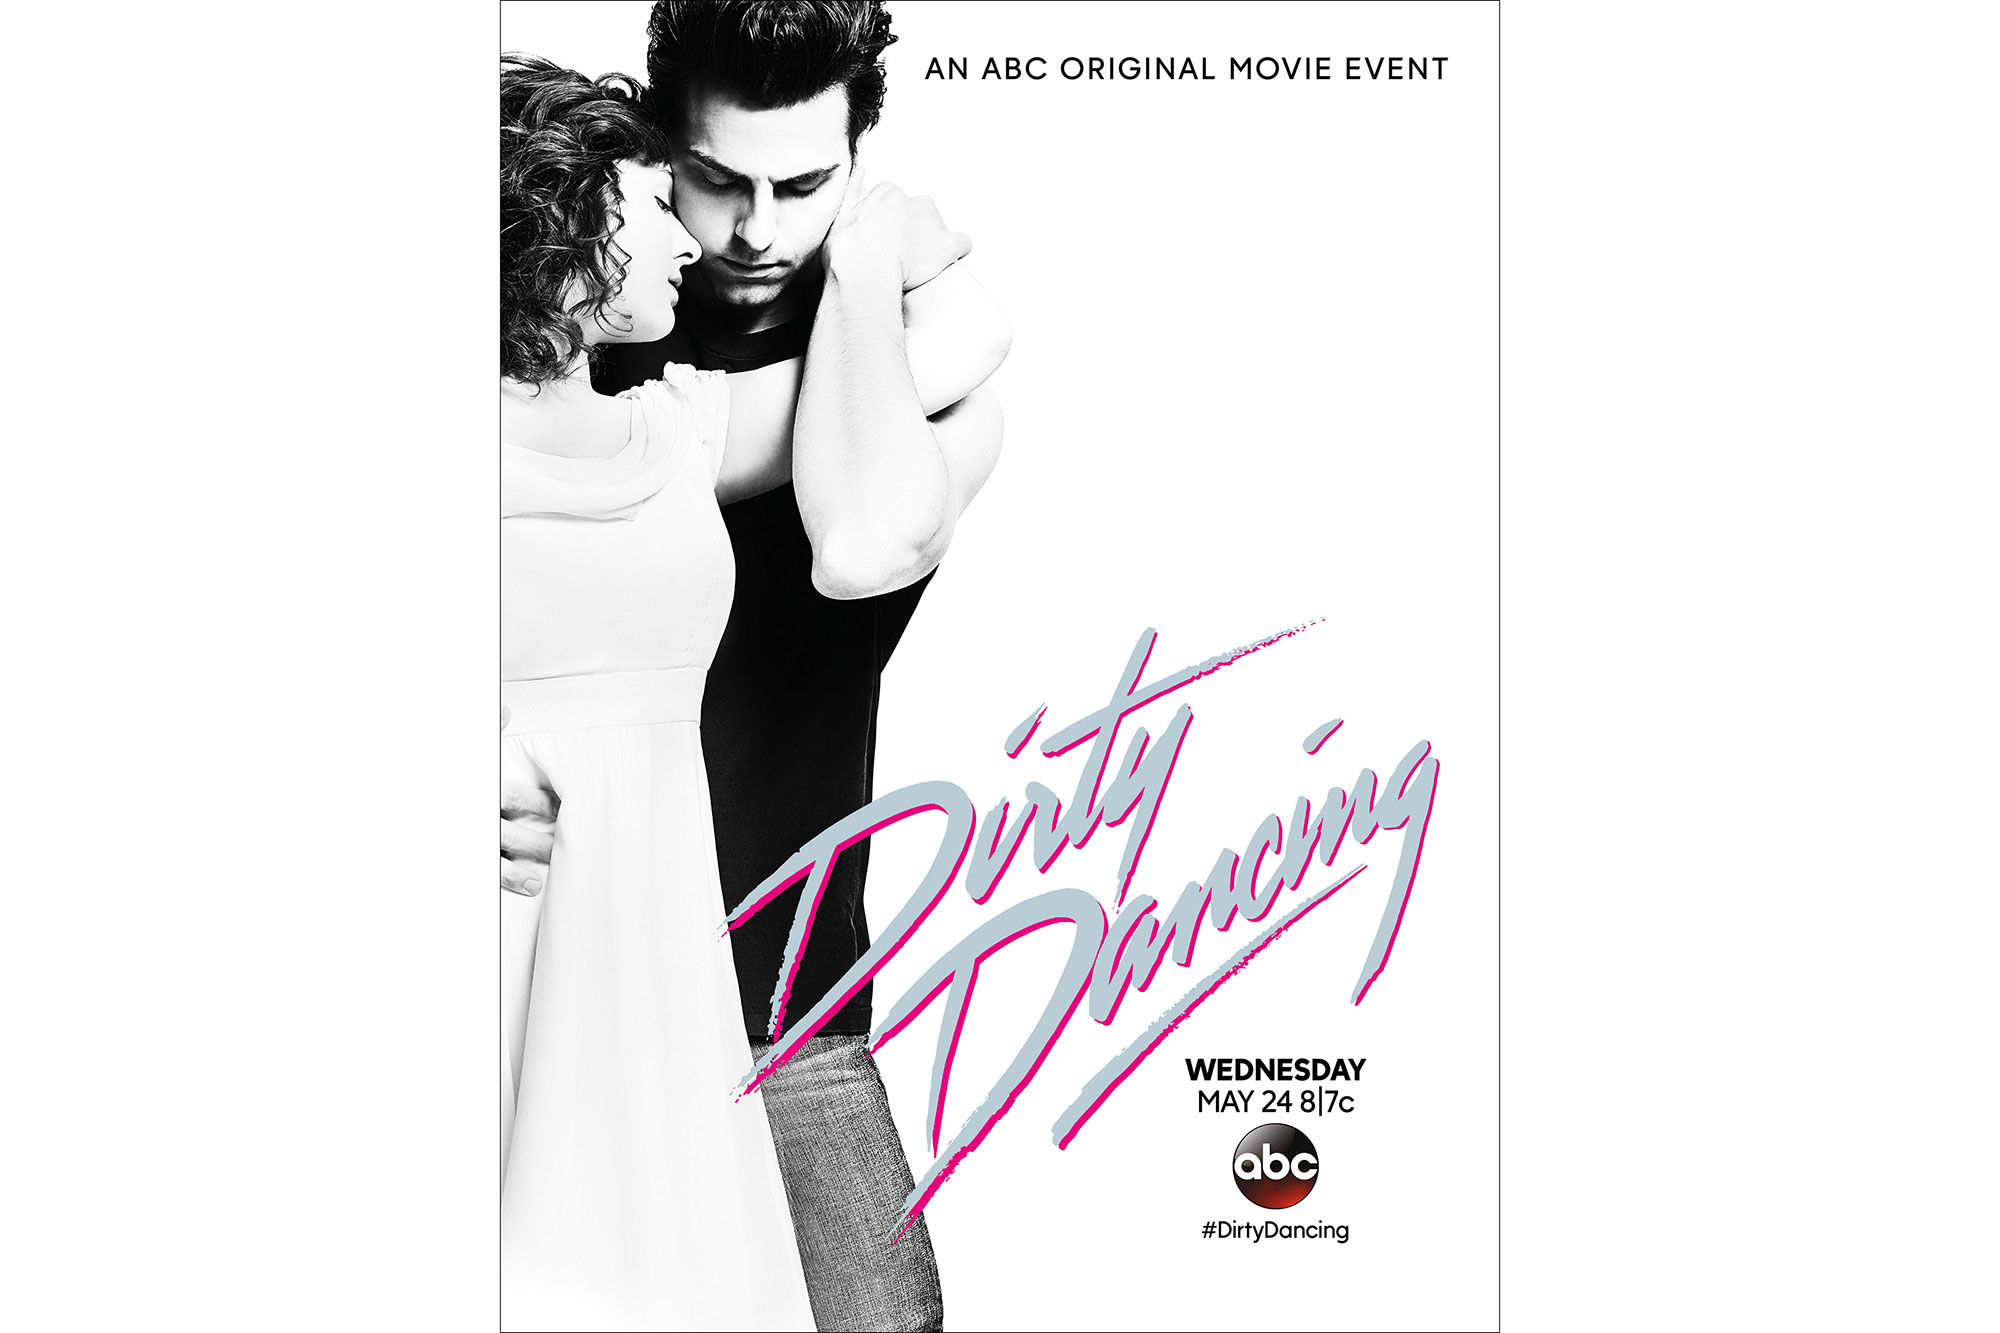 Cast of Dirty Dancing Remake Share Preview of What's to ComeCredit: ABC